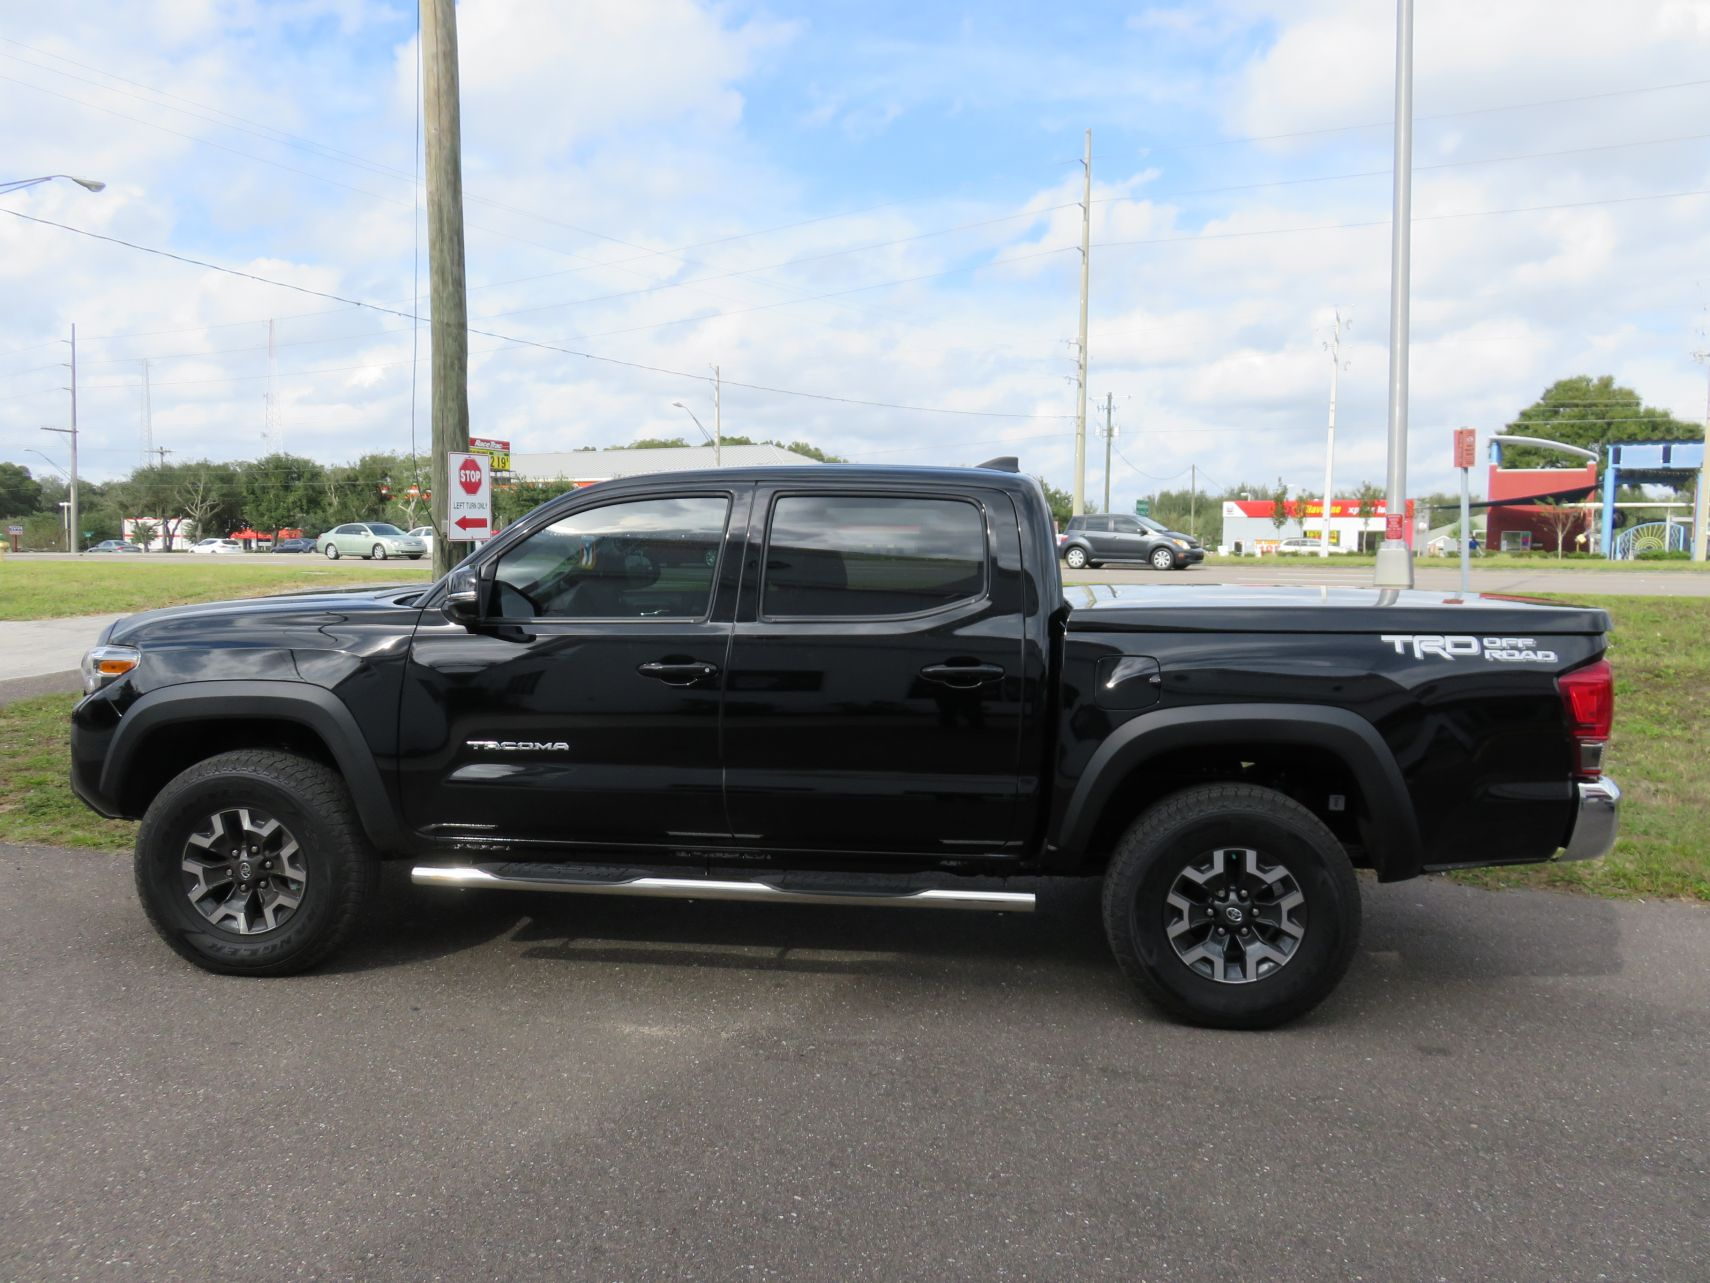 2016 Black Toyota Tacoma Leer 550 Fiberglass Tonneau Cover Topperking Topperking Providing All Of Tampa Bay With Quality Truck Accessories